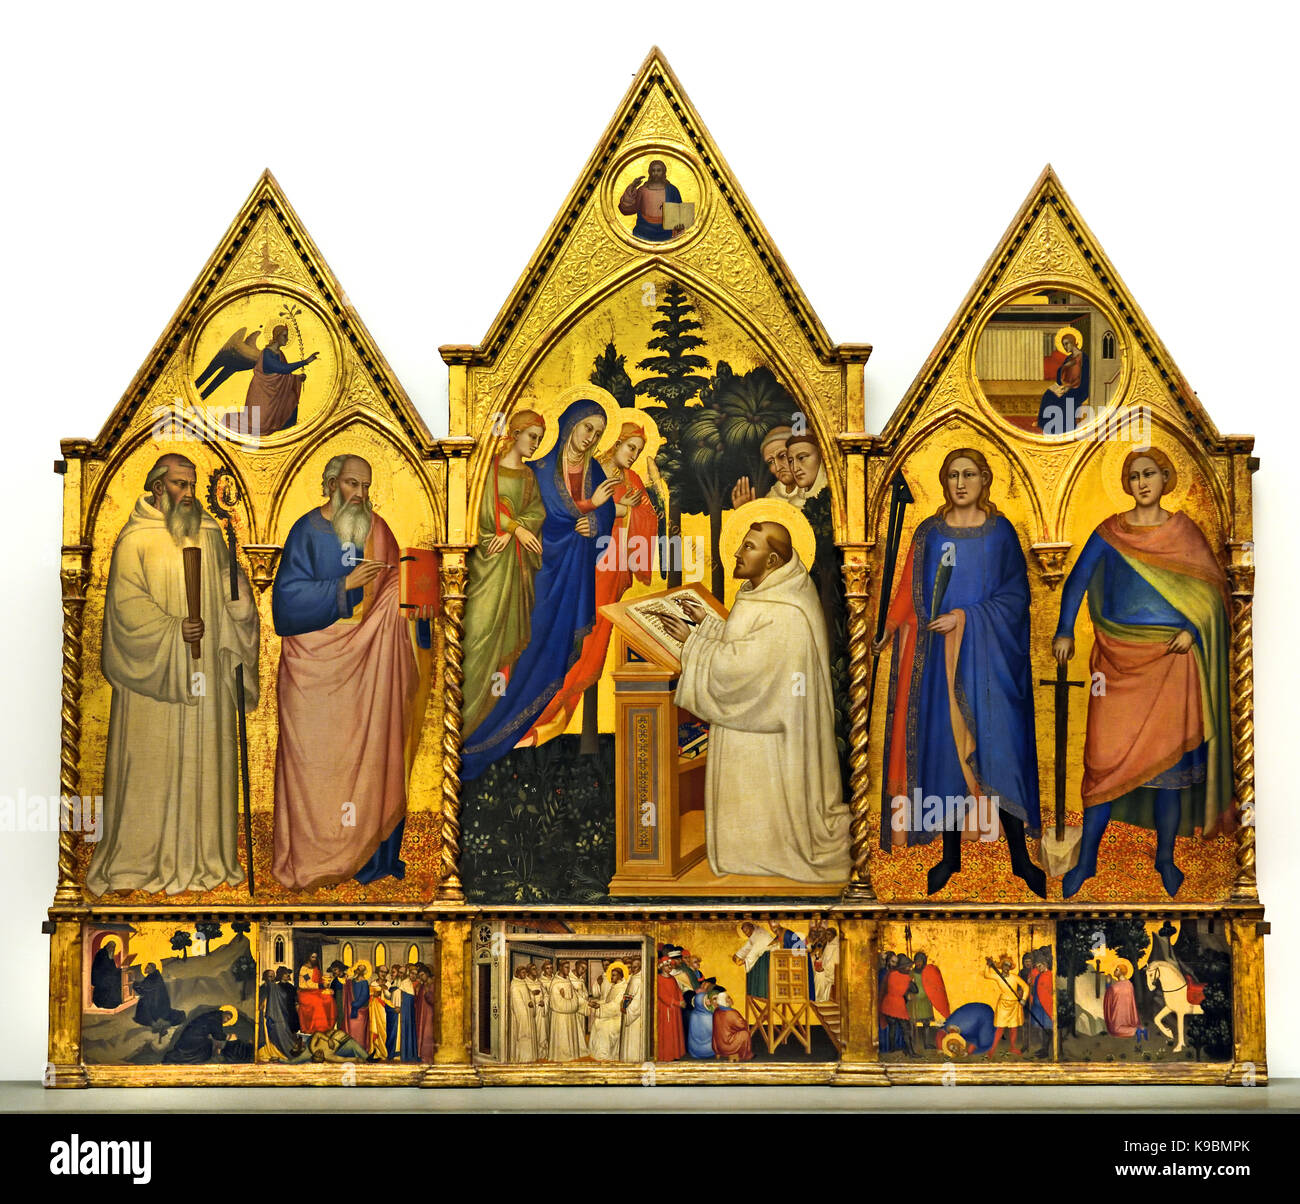 Matteo di Pacino, Madonna appare a San Bernardo - Our Lady appears in St. Bernard 1365, Academy Gallery, Florence - Stock Image